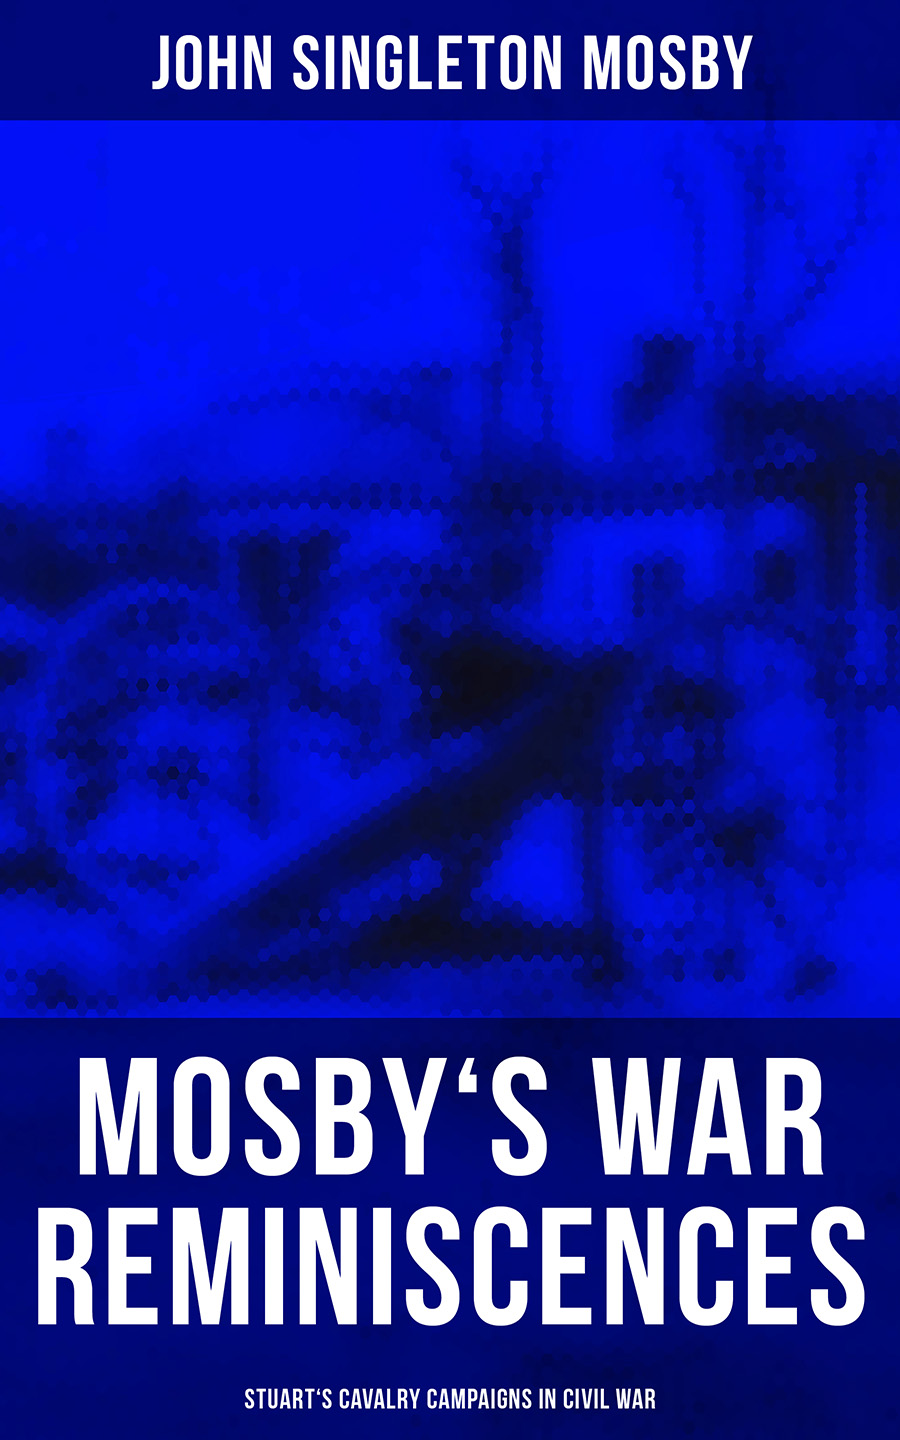 John Singleton Mosby Mosby's War Reminiscences - Stuart's Cavalry Campaigns in Civil War jacob dolson cox military reminiscences of the civil war volume 1 april 1861 november 1863